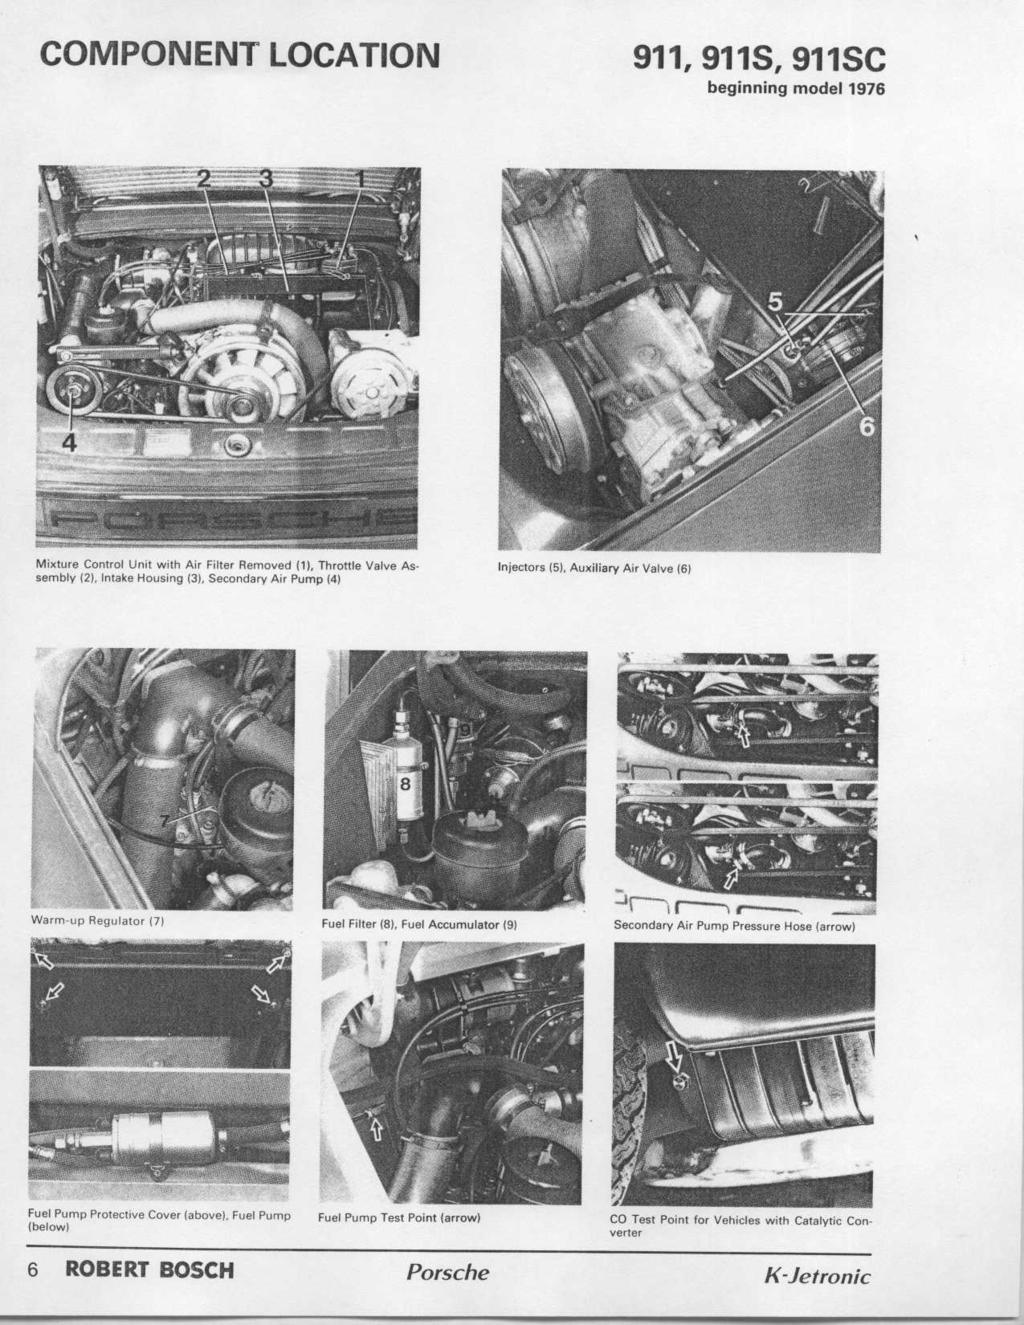 Workshop Manual Porsche K Jetronic Robert Bosch Pdf 1998 Volvo 5 0 Gl Fuel Filter Location Component 911911s 911sc Beginning Model 1976 Mixture Control Unit With Air Removed